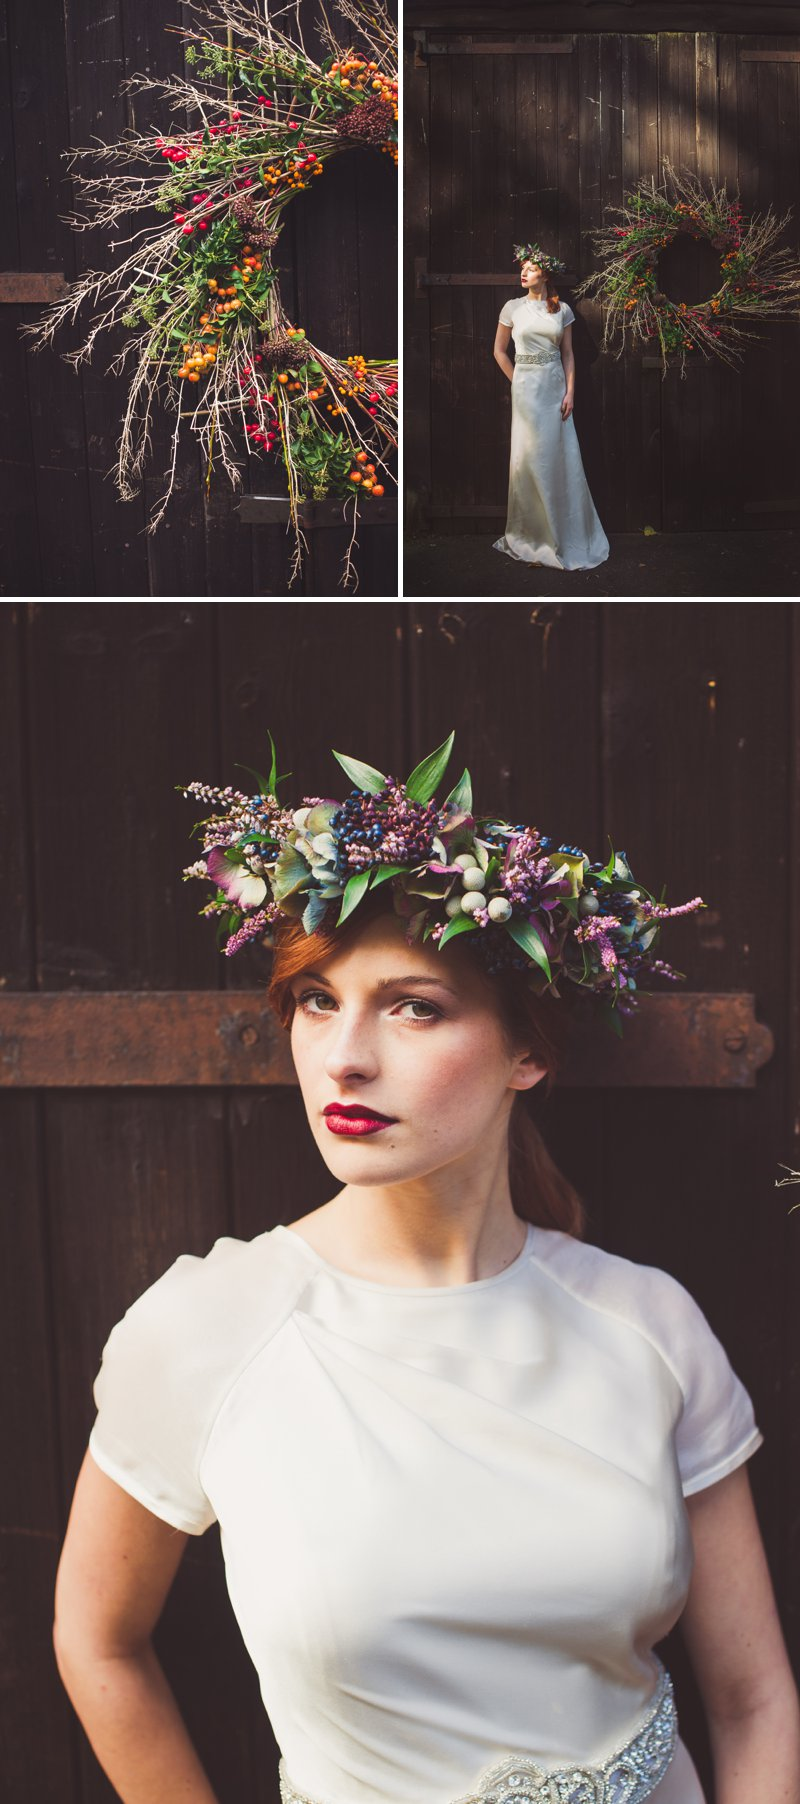 Autumn Fall Inspired Wedding Decor and Fashion Editorial by Rock My Wedding With Florals By Mrs Umbels, Make-up By Claire Salter Photographed By Rebekah J Murray._0003